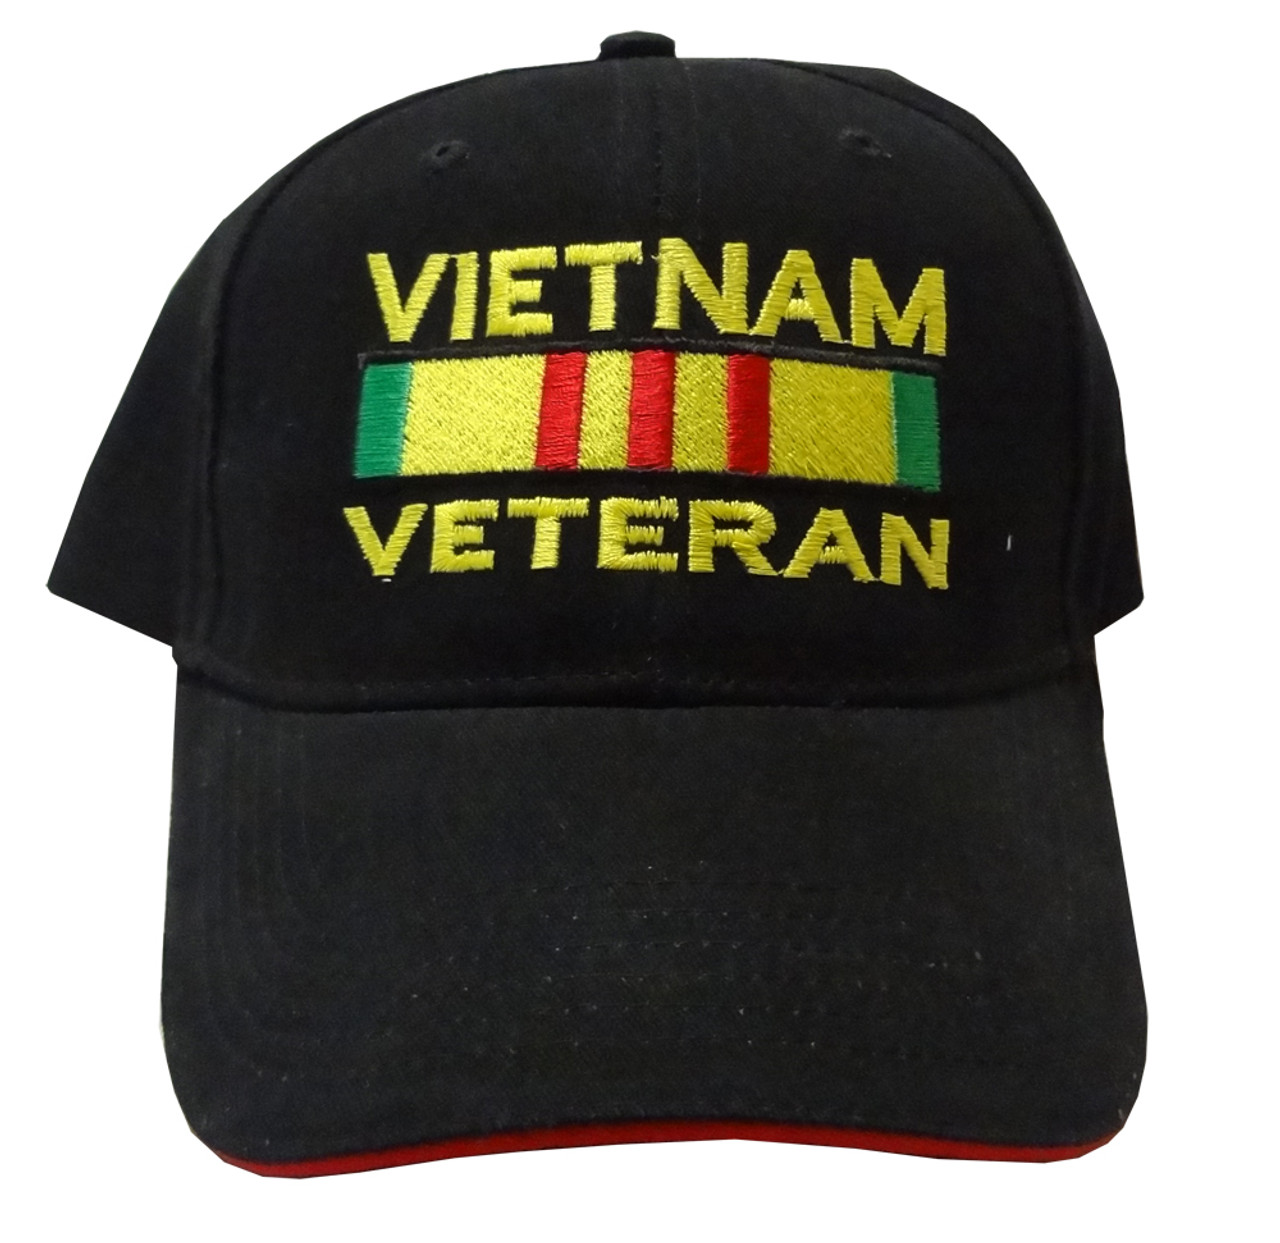 f3325de70e6 Vietnam Veteran Hat - Made In America Store